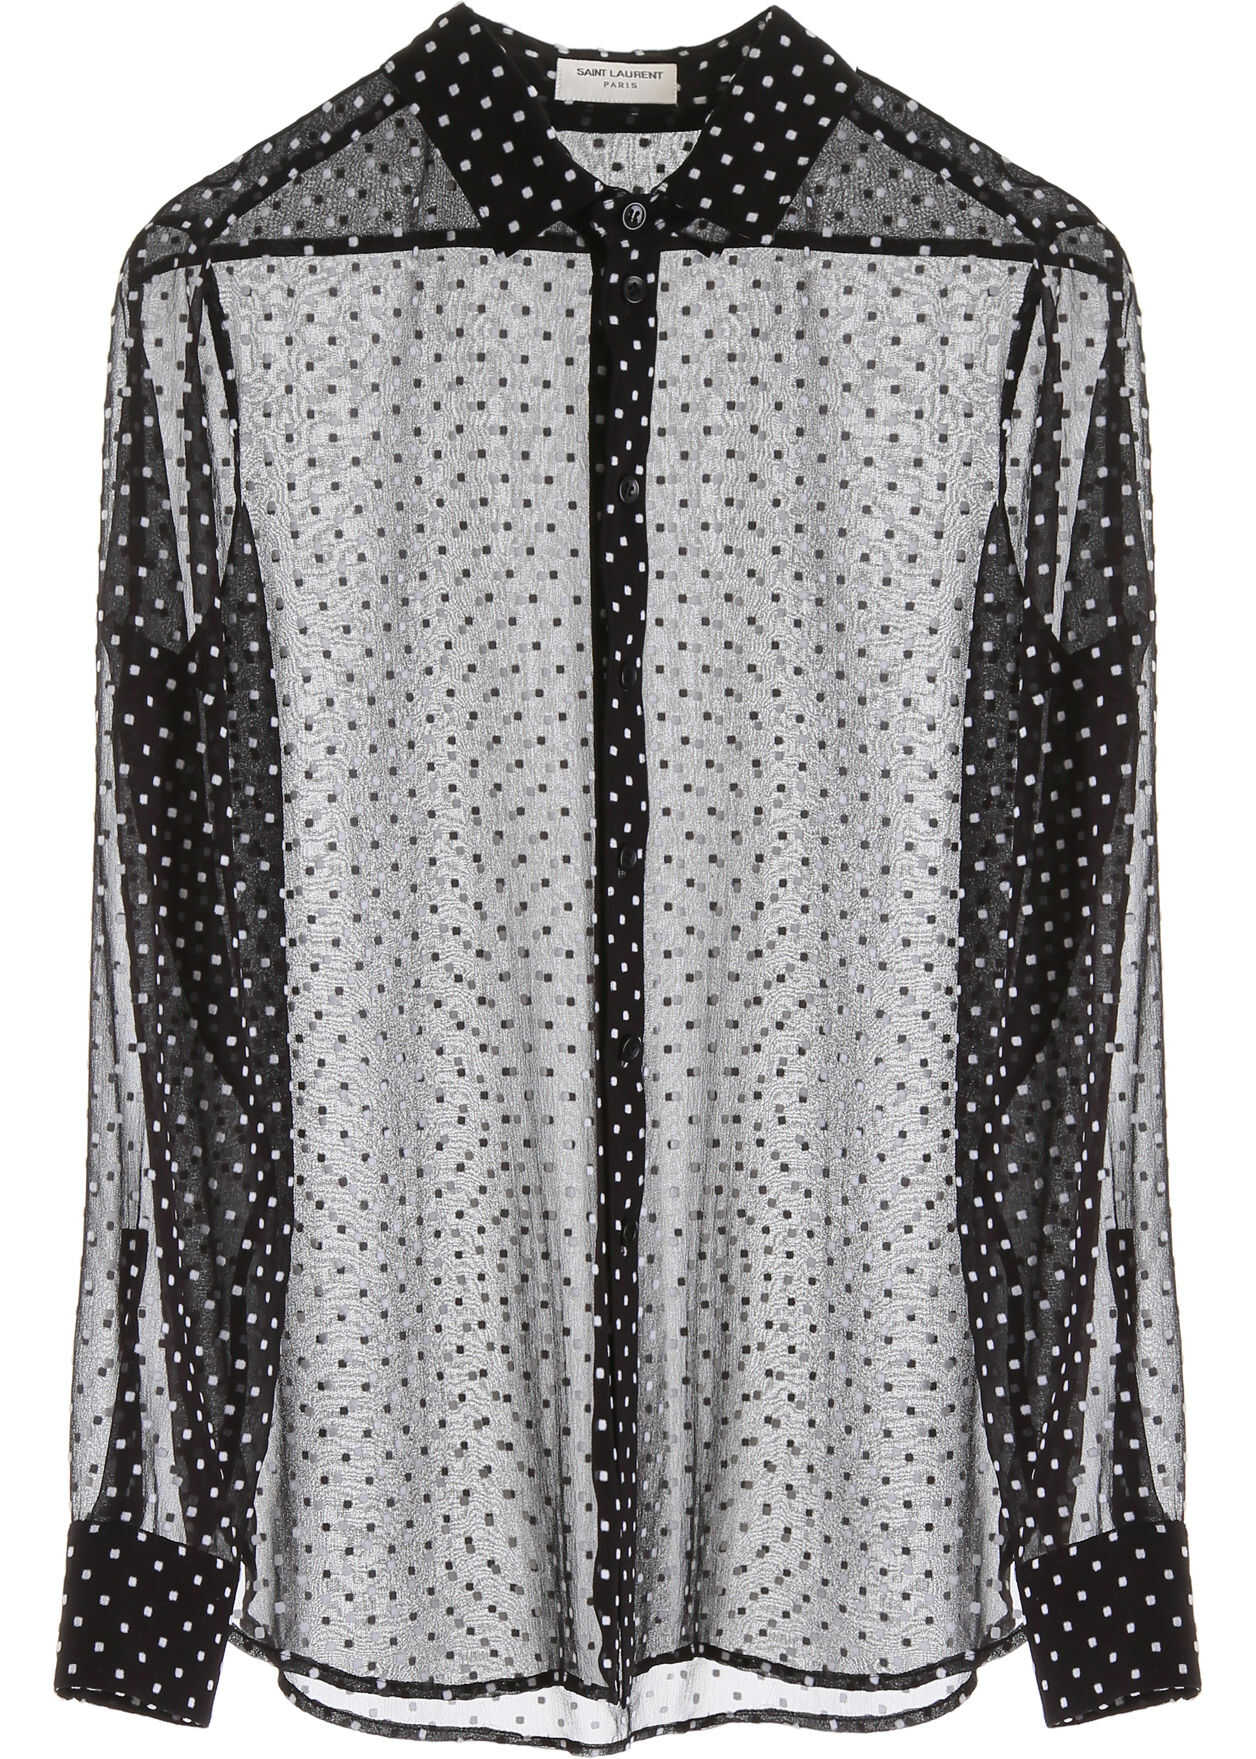 Saint Laurent Dotted Square Shirt NOIR BLANC OPTIQUE